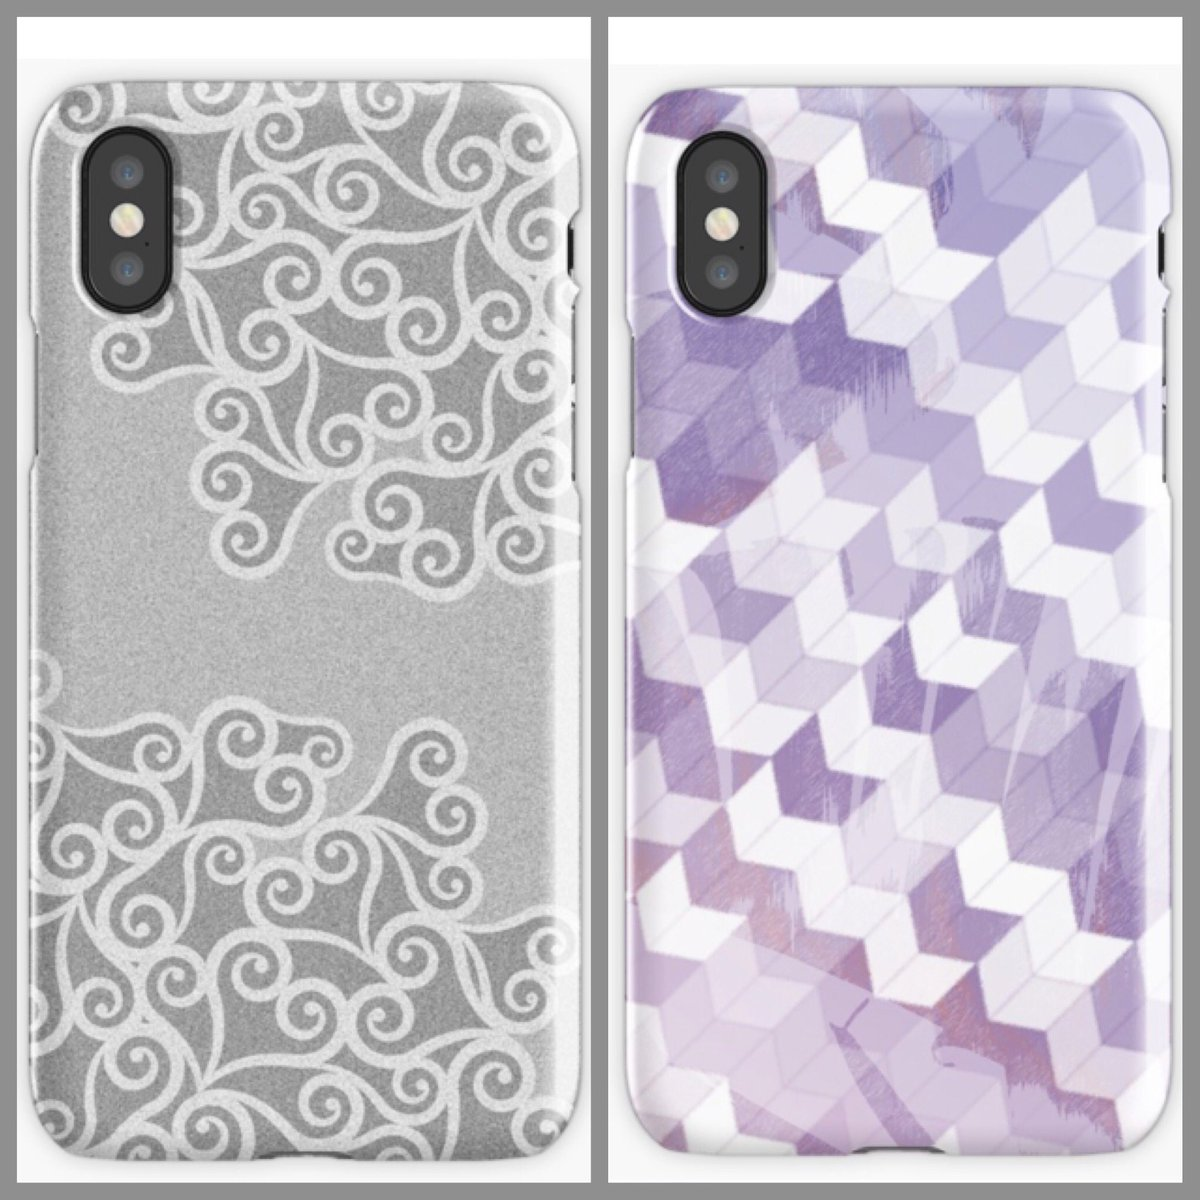 Celebrating The iPhone X with 25% OFF  iPhone &amp; Samsung cases with CODE: YOURNEWCASE at my Redbubble Store&lt;  http:// oursunnycdays.redbubble.com / &nbsp;   @redbubble #phonecases #iphonex #phonecover #giftsideas #musthave #artshop #holidaygifts #holiday #christmas #goodies #christmasgifts @oursunnycdays<br>http://pic.twitter.com/UoyqsR7rW4